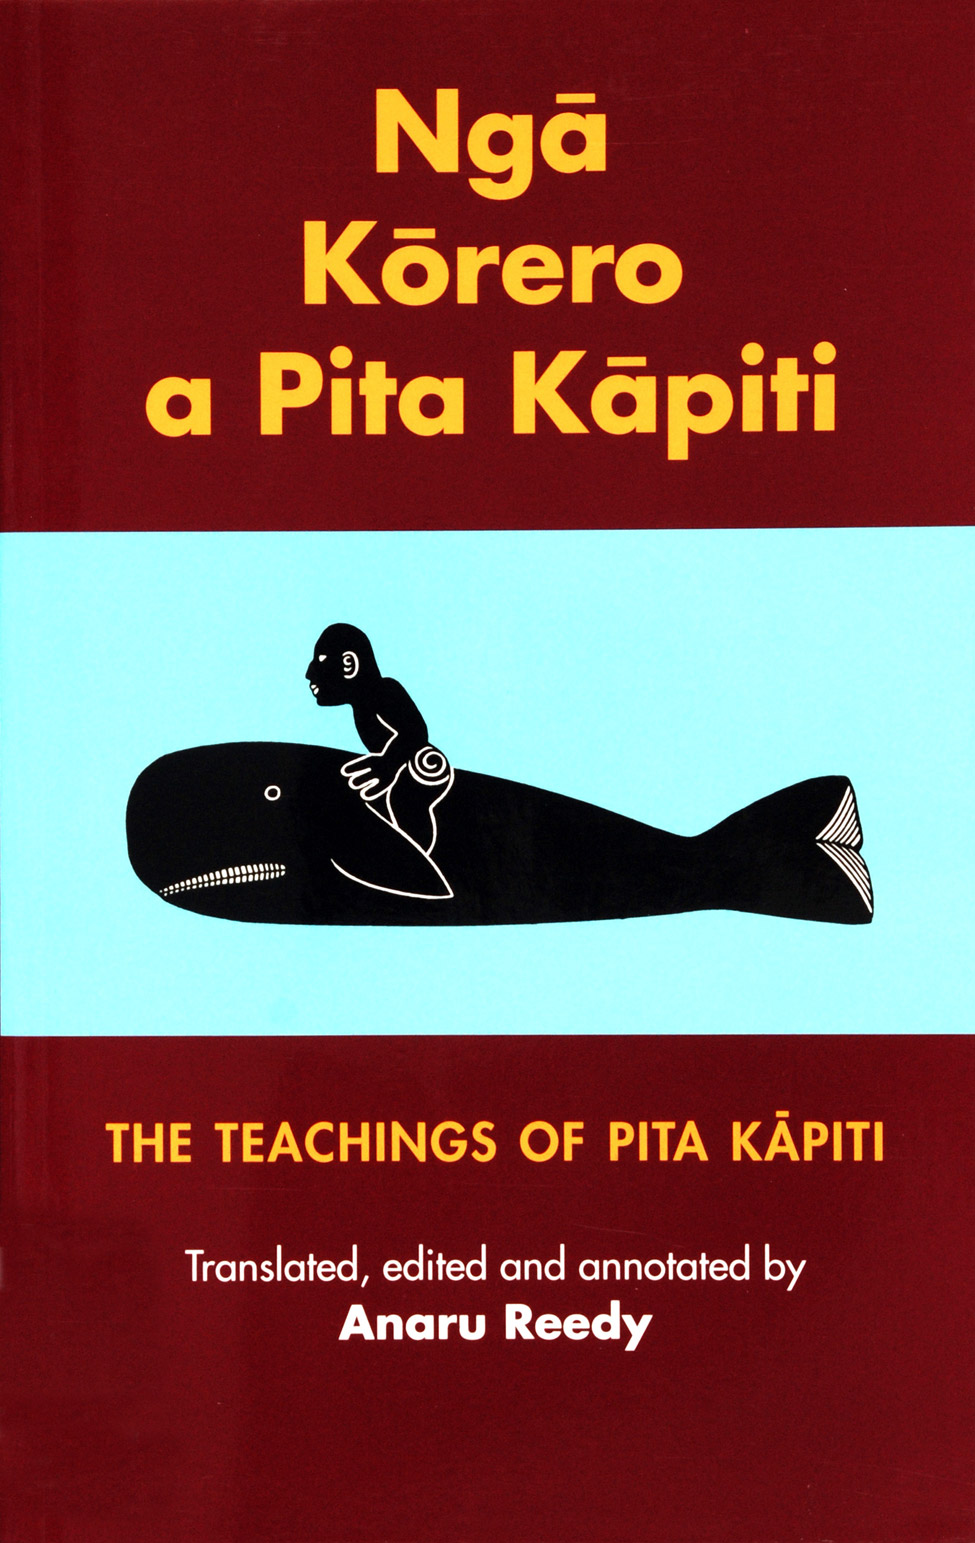 Anaru Reedy. <i>Ngā Kōrero a Pita Kāpiti: The Teachings of Pita Kāpiti. </i>Christchurch: Canterbury University Press, 1997.